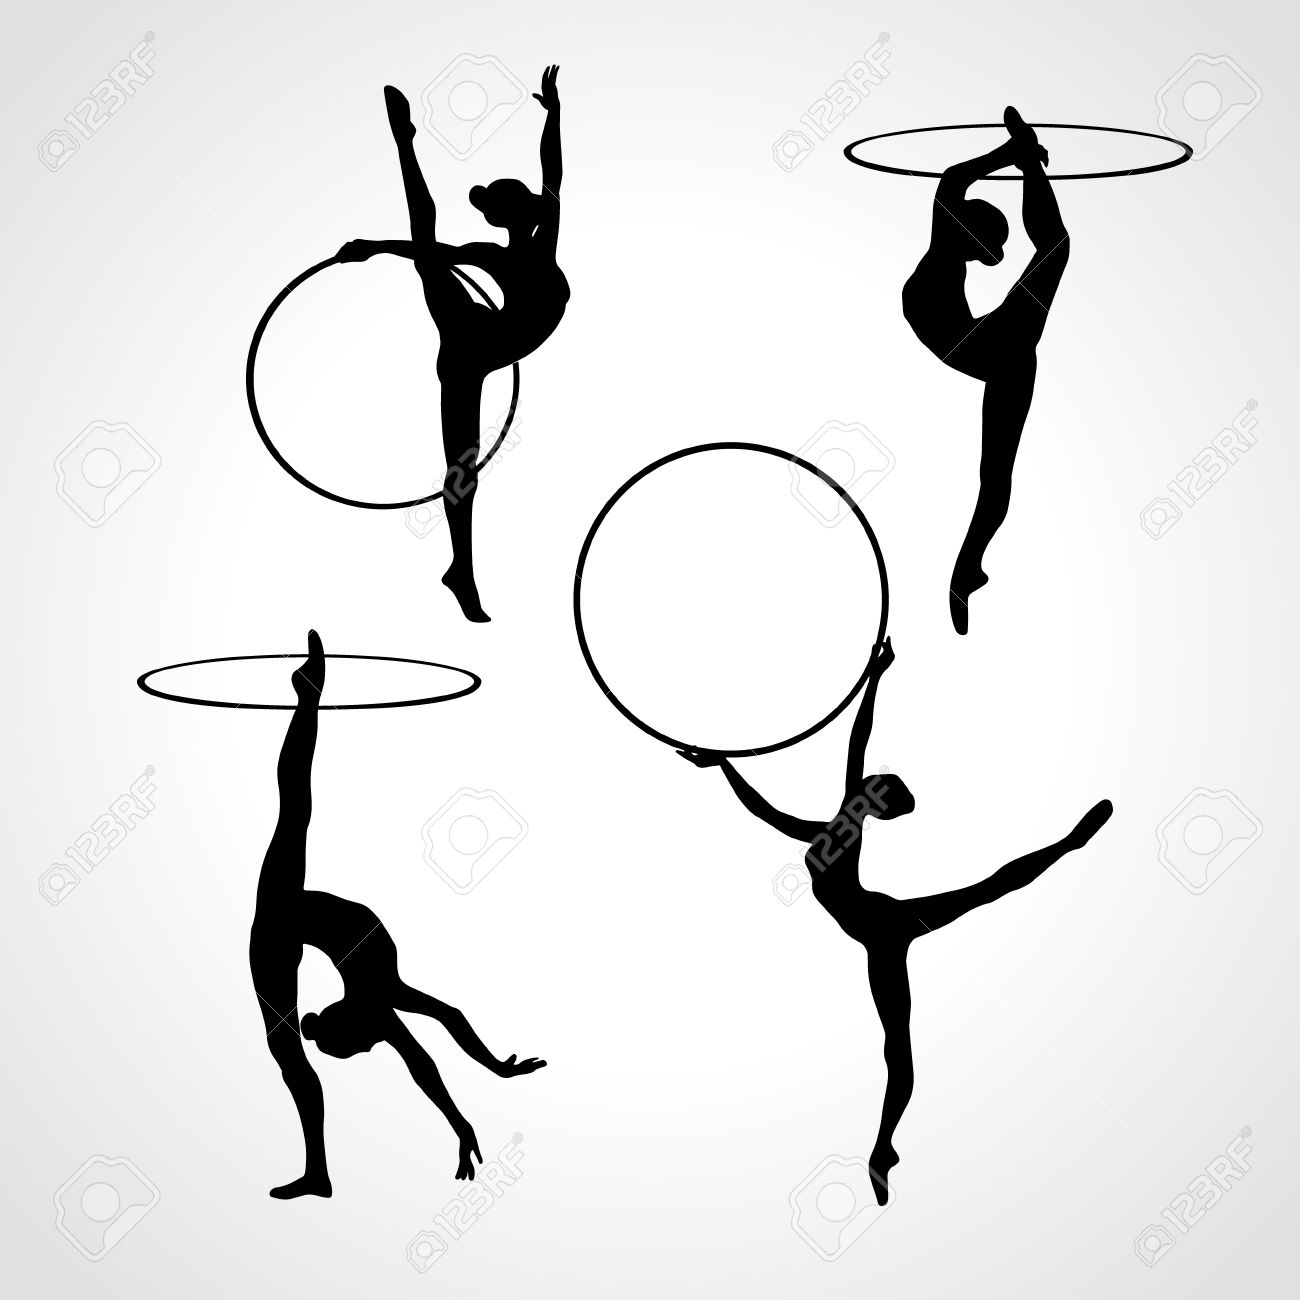 Collection 4 Creative silhouettes of gymnastic girls with hoop. Art gymnastics set, black and white illustration - 53927644